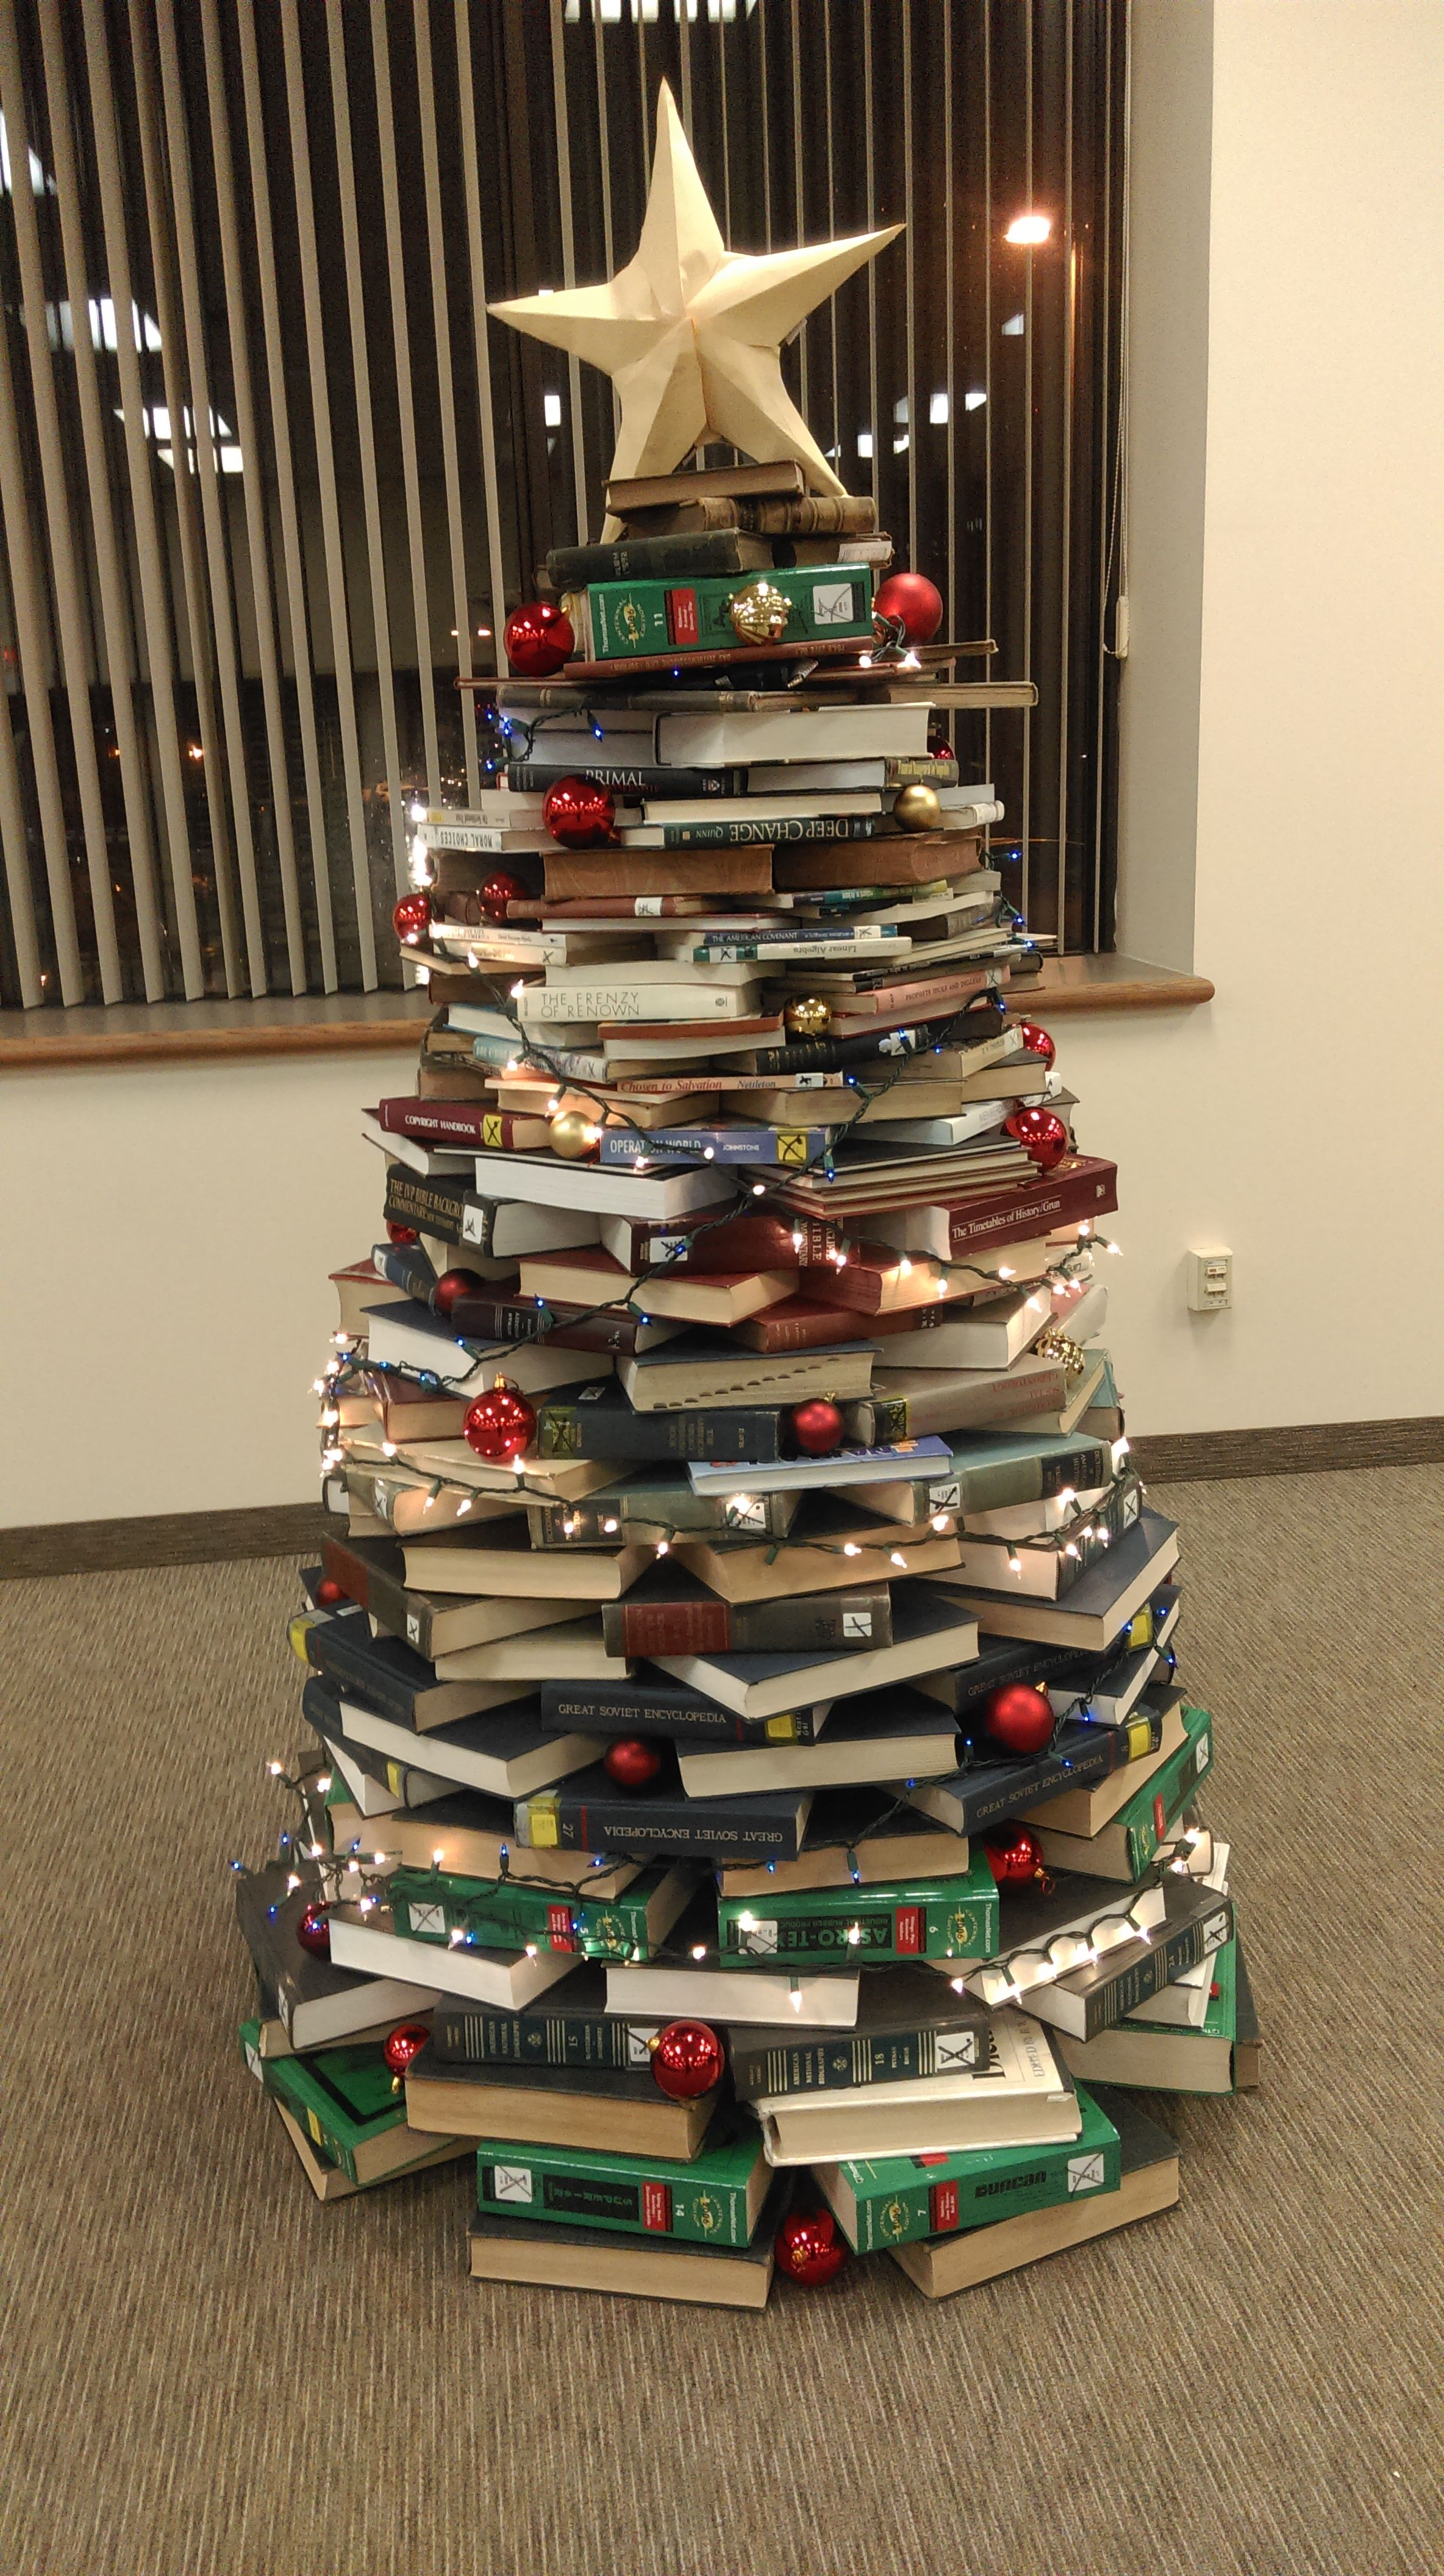 My Cairn Christmas Library Tree @ Cairn University Masland Library